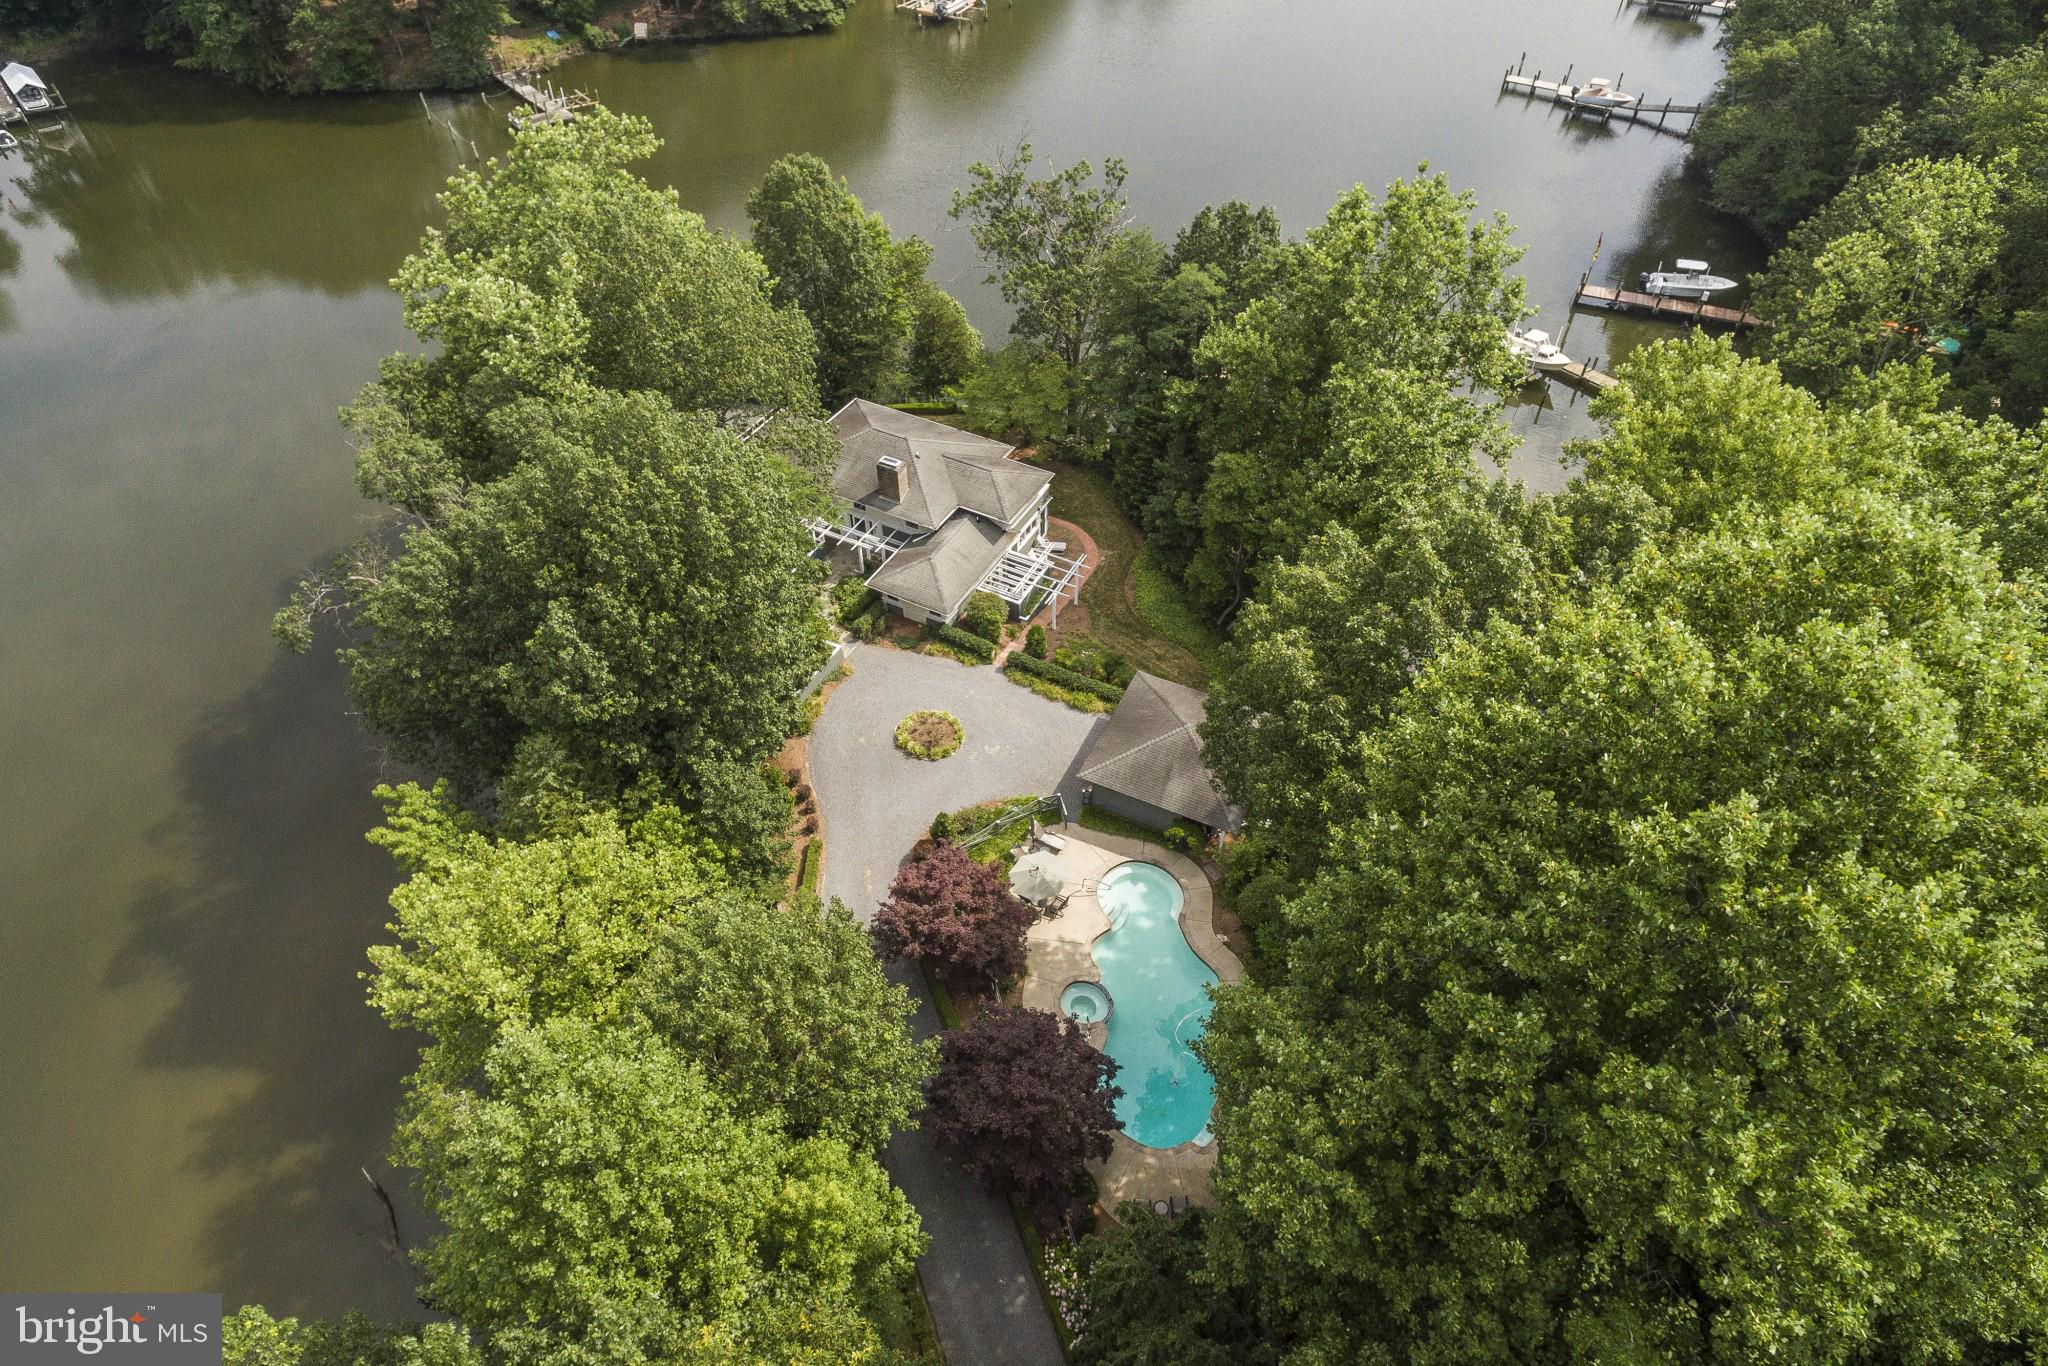 QUINTESSENTIAL ESCAPE. This waterfront residence in Southern Maryland is nestled into a very private